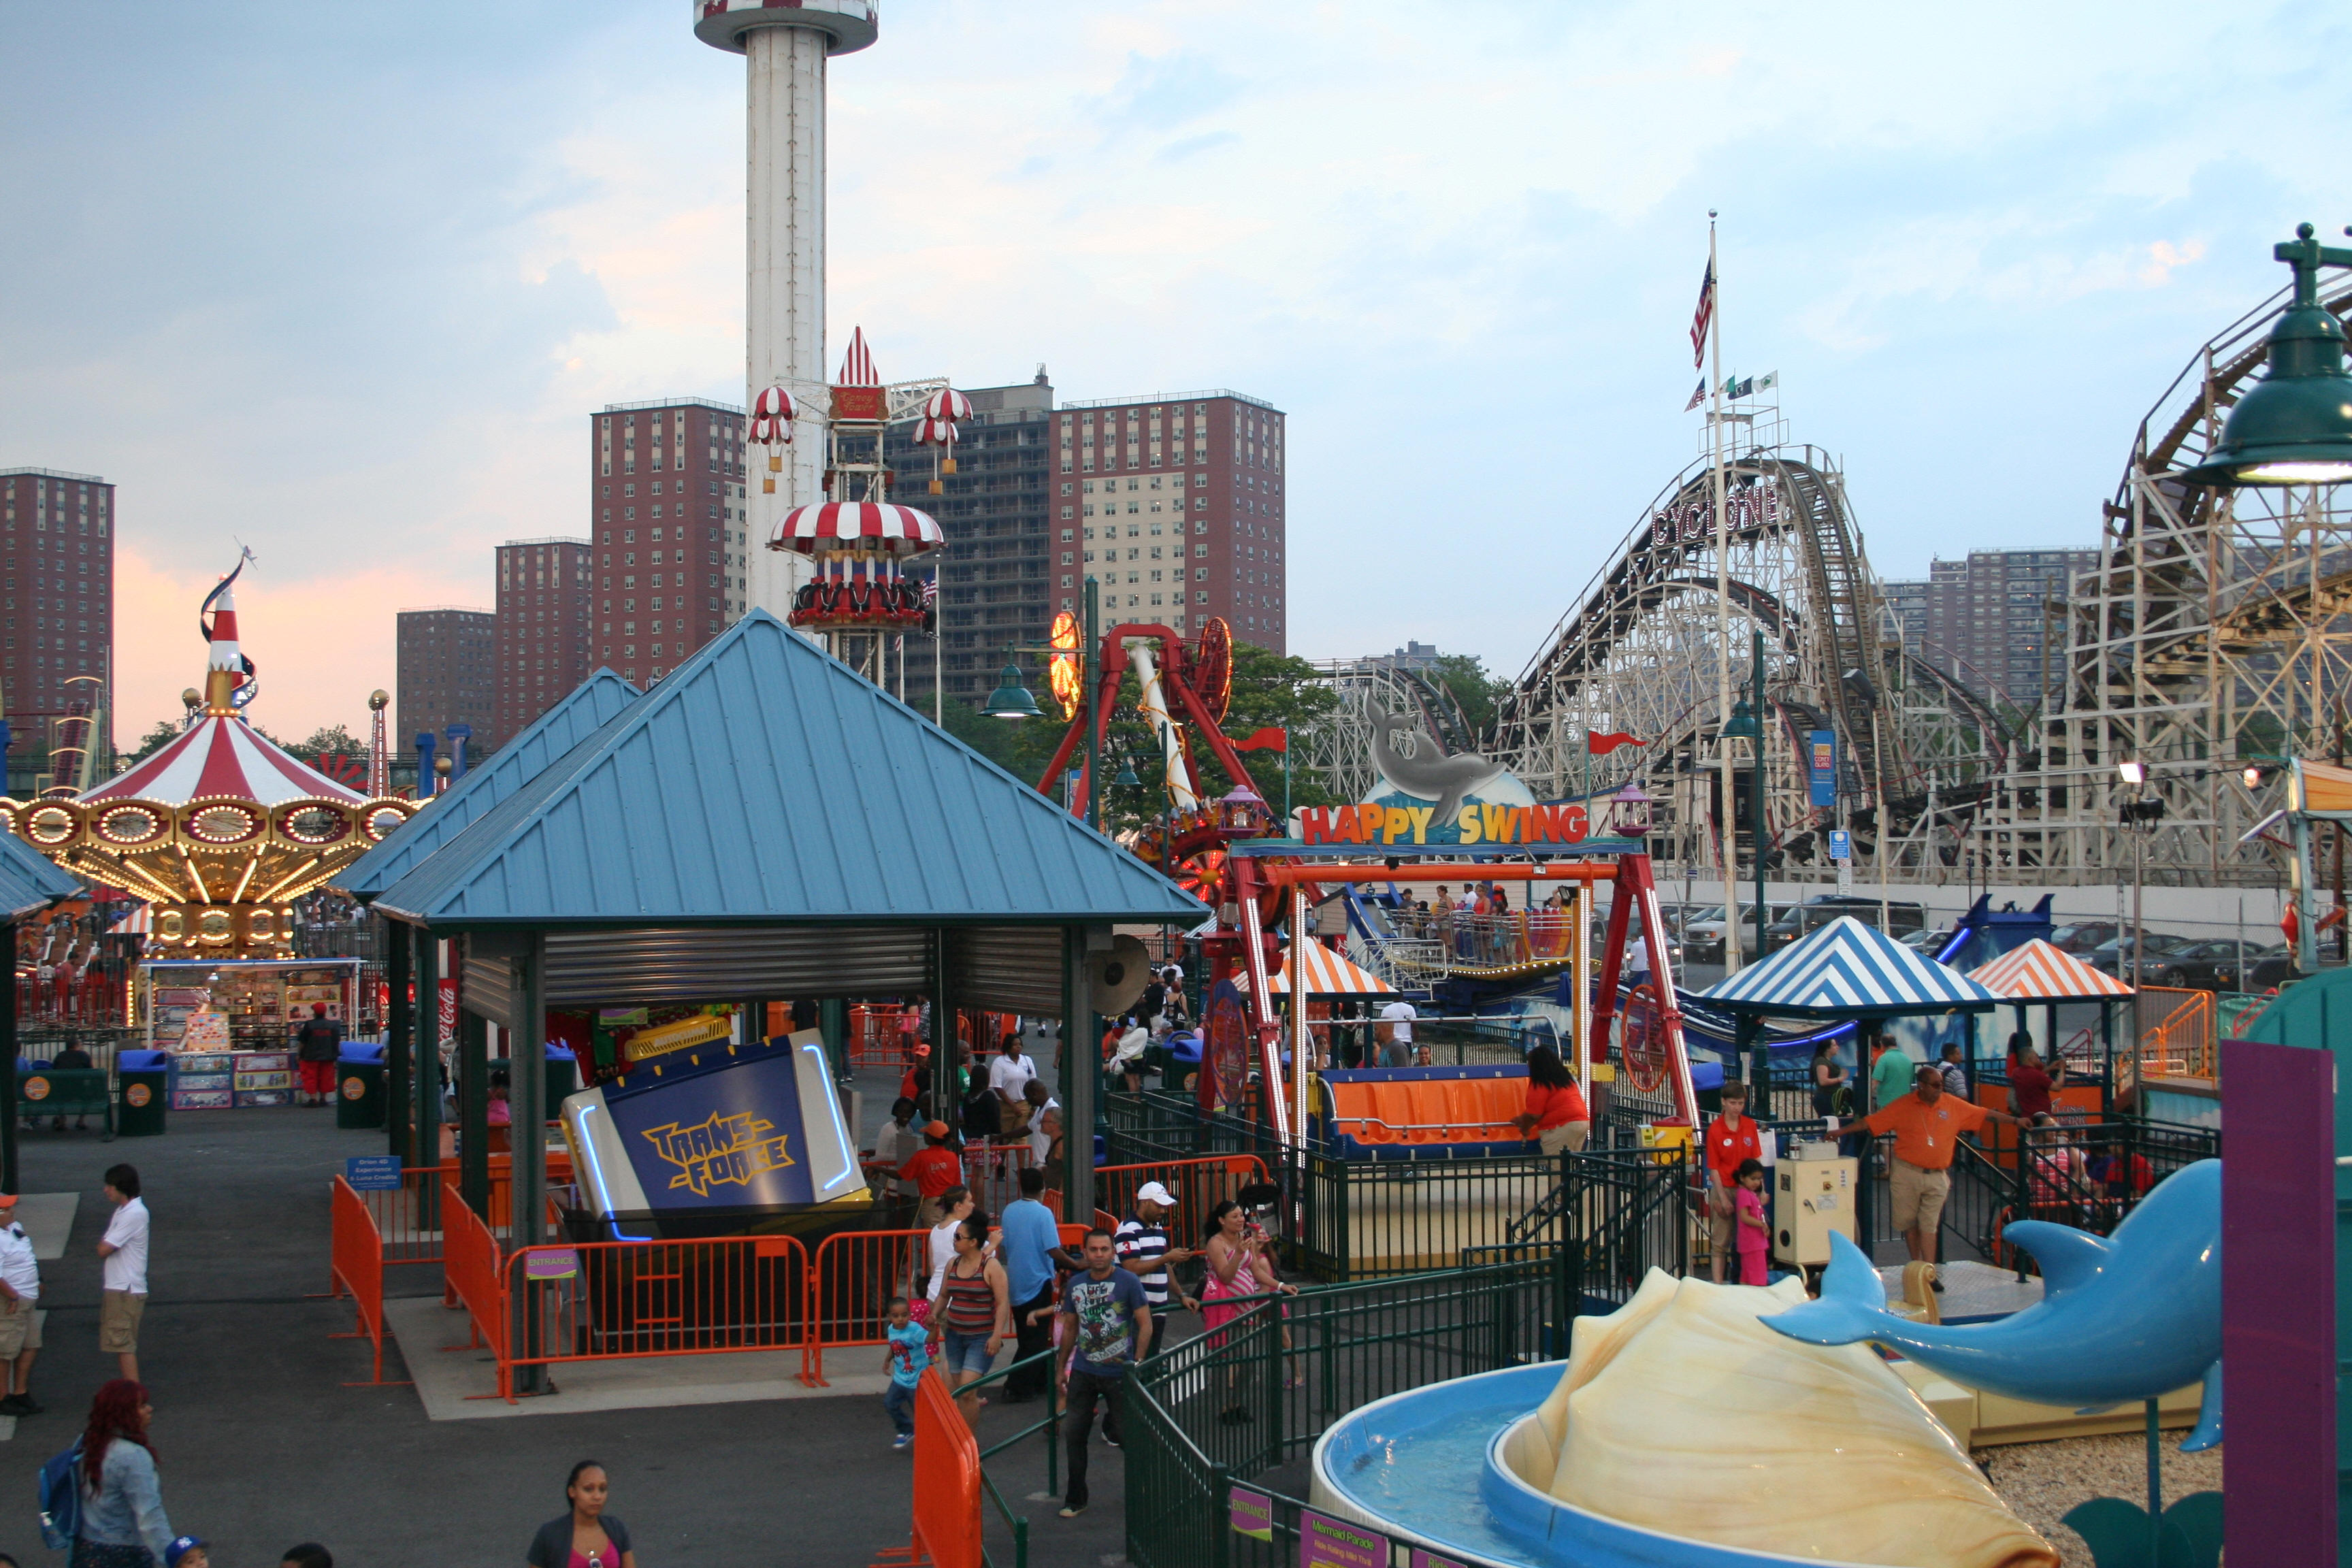 coney island brooklyn new york free picture gallery student handouts. Black Bedroom Furniture Sets. Home Design Ideas